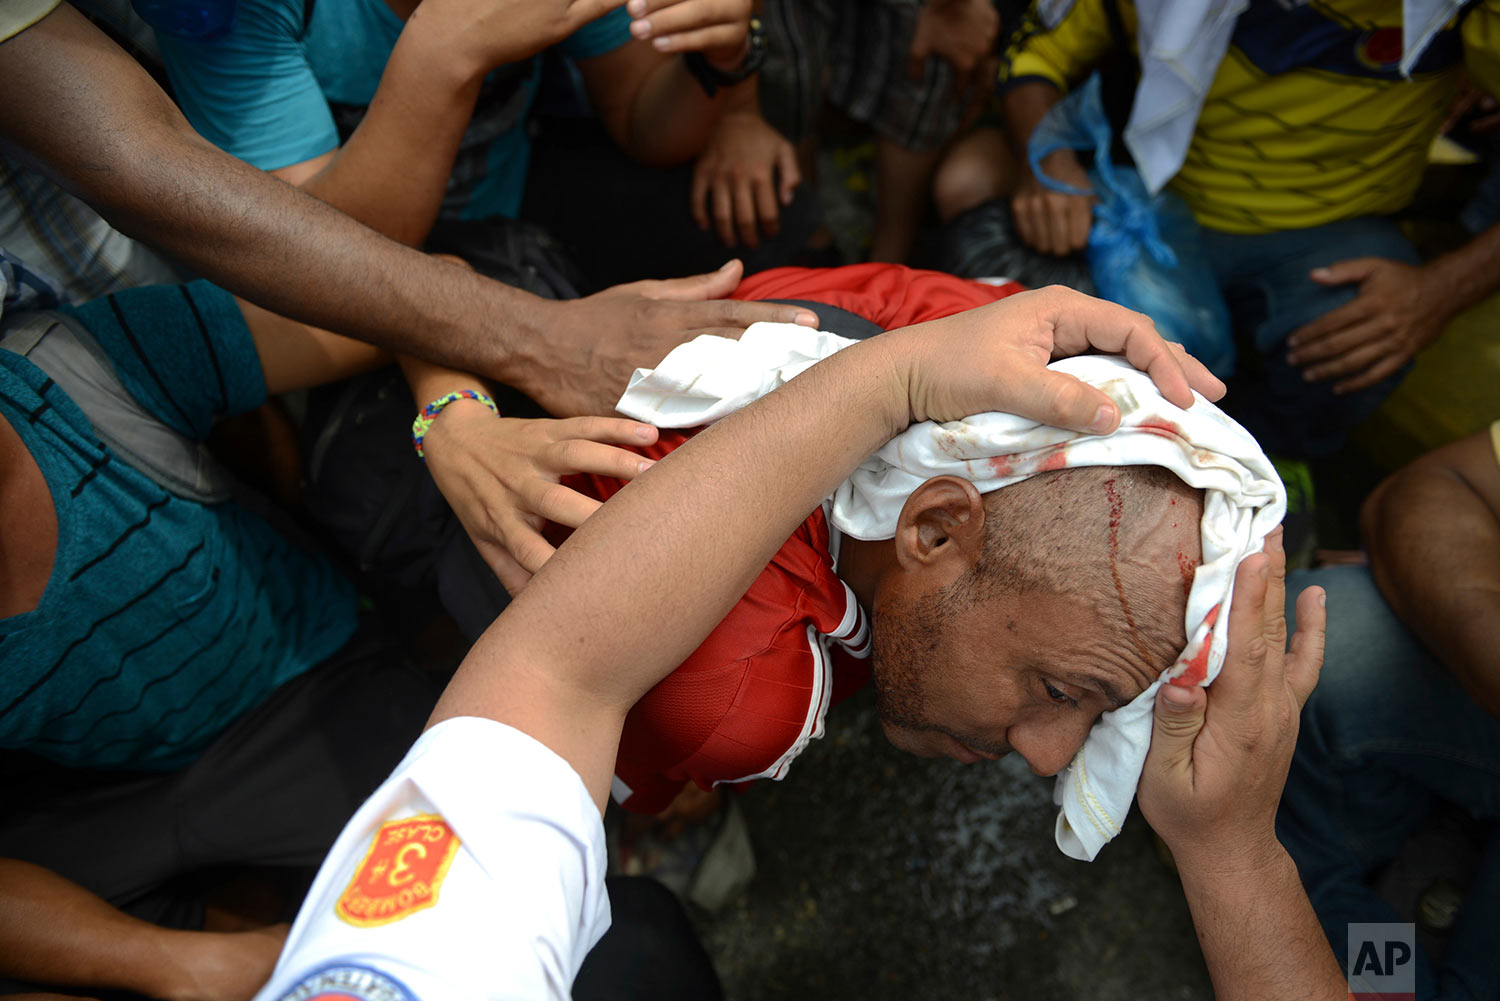 Migrants rush to the aide of a man injured by a rock thrown by an unidentified person at the border bridge in Tecun Uman, Guatemala, Friday, Oct. 19, 2018, as migrants broke down the gates at the Guatemala-Mexico border crossing. (AP Photo/Oliver de Ros)